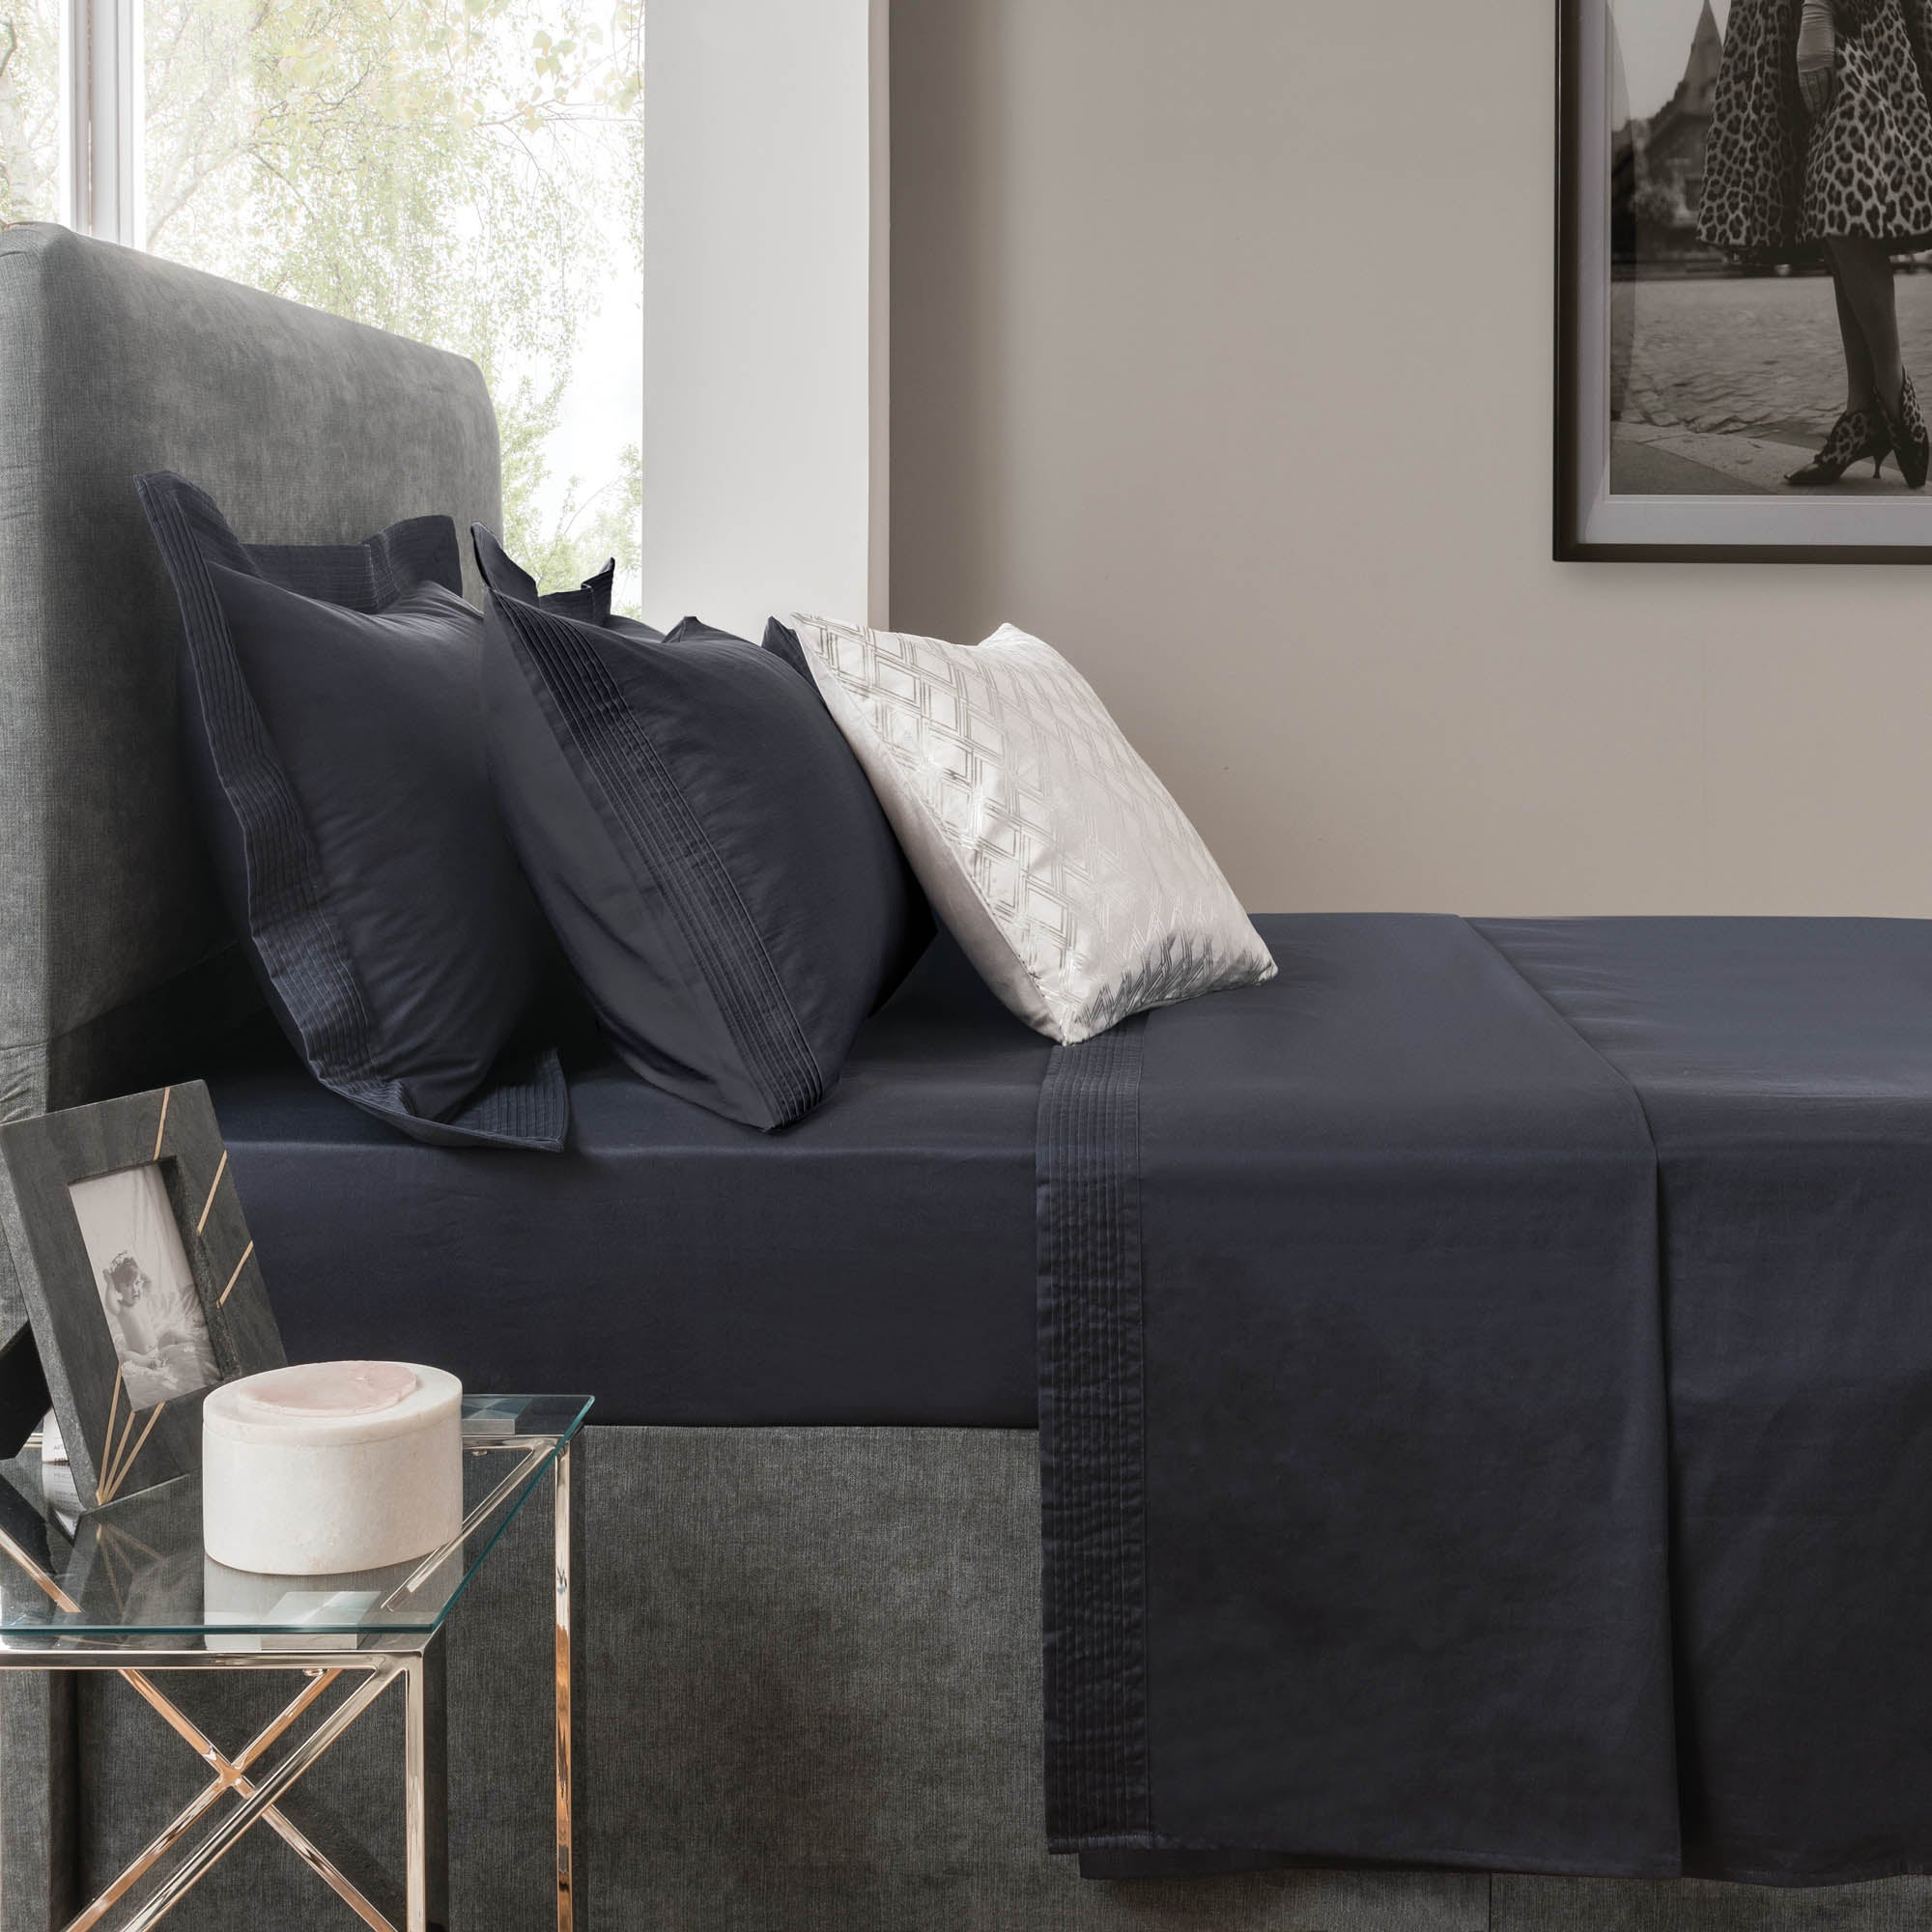 Image of 5A Fifth Avenue 300 Thread Count Modal Navy Flat Sheet Midnight Blue